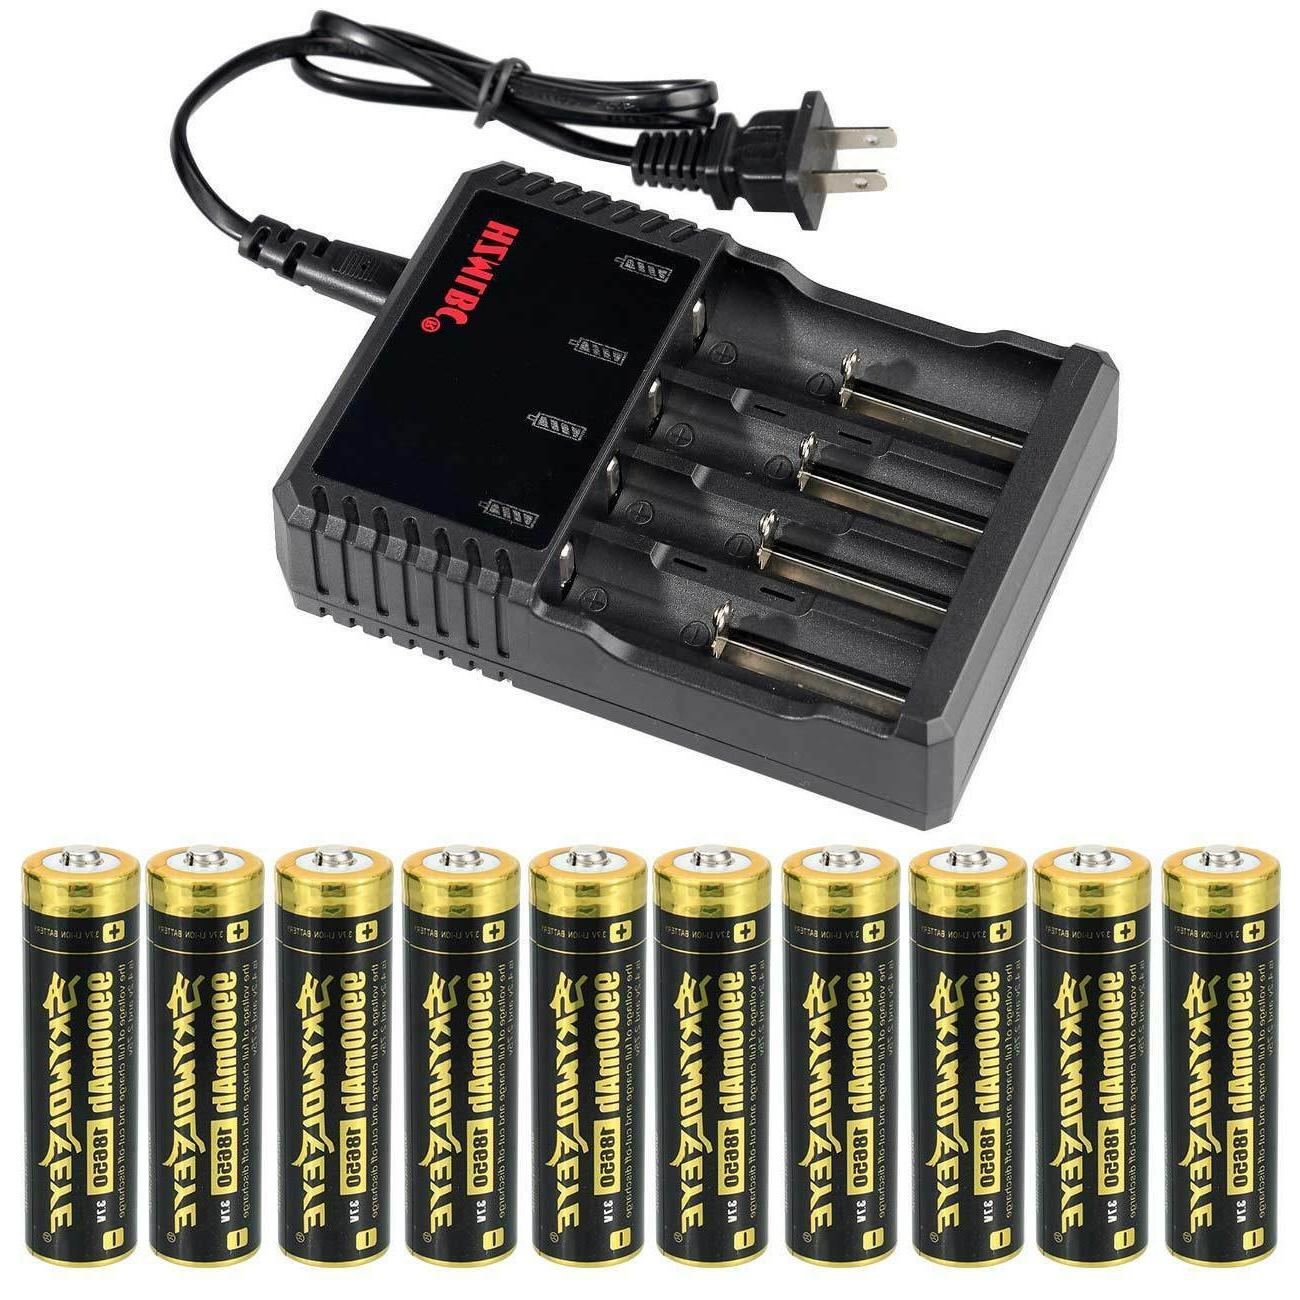 Skywolfeye 18650 Battery 9900mAh Li-ion 3.7V Rechargeable Fo